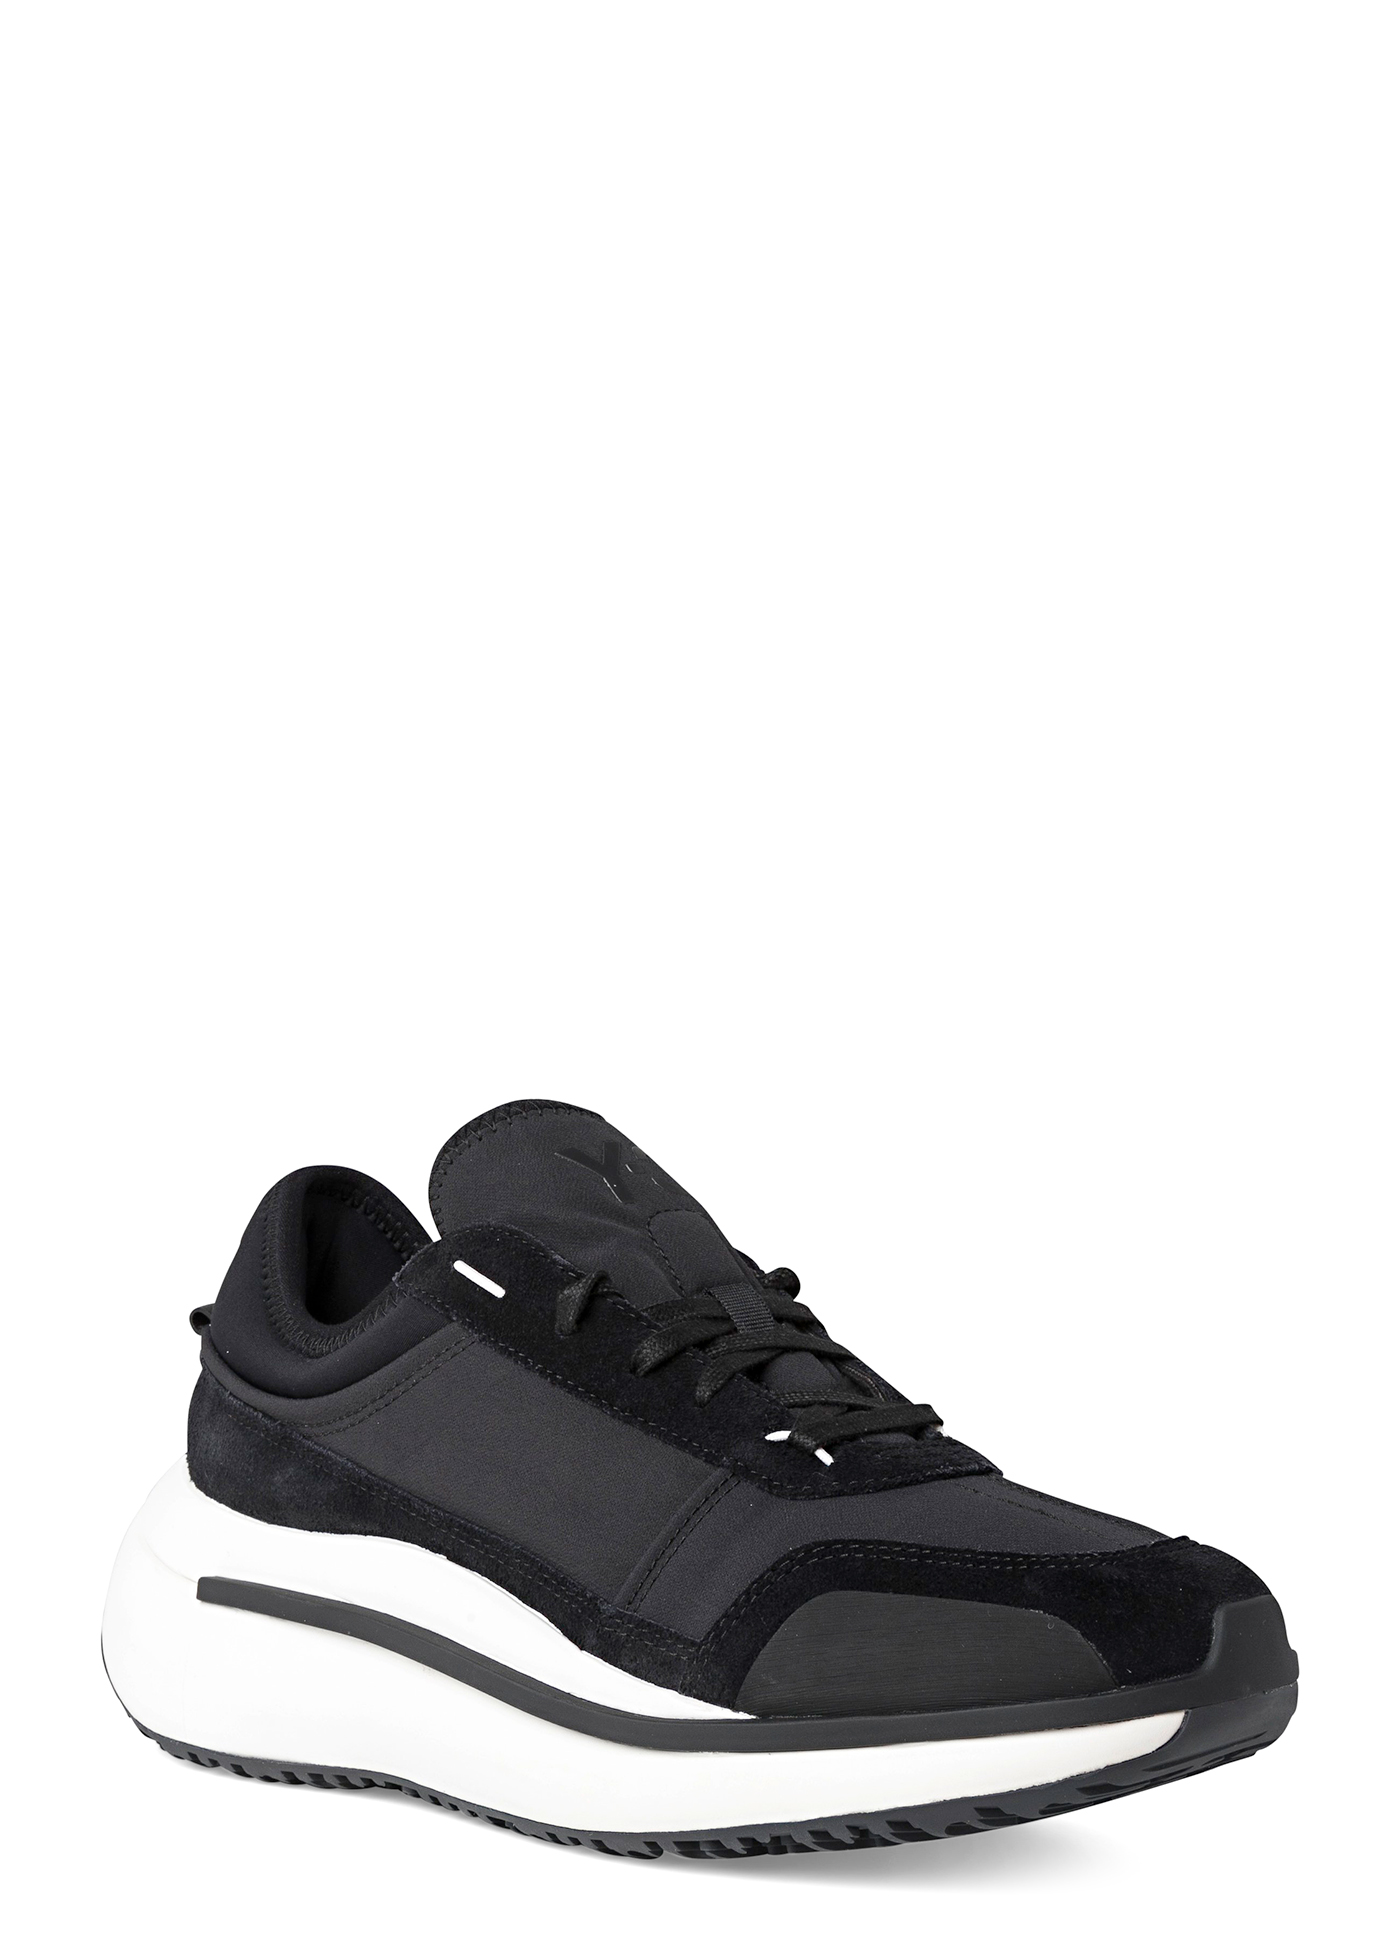 Y-3 CLASSIC RUN image number 1